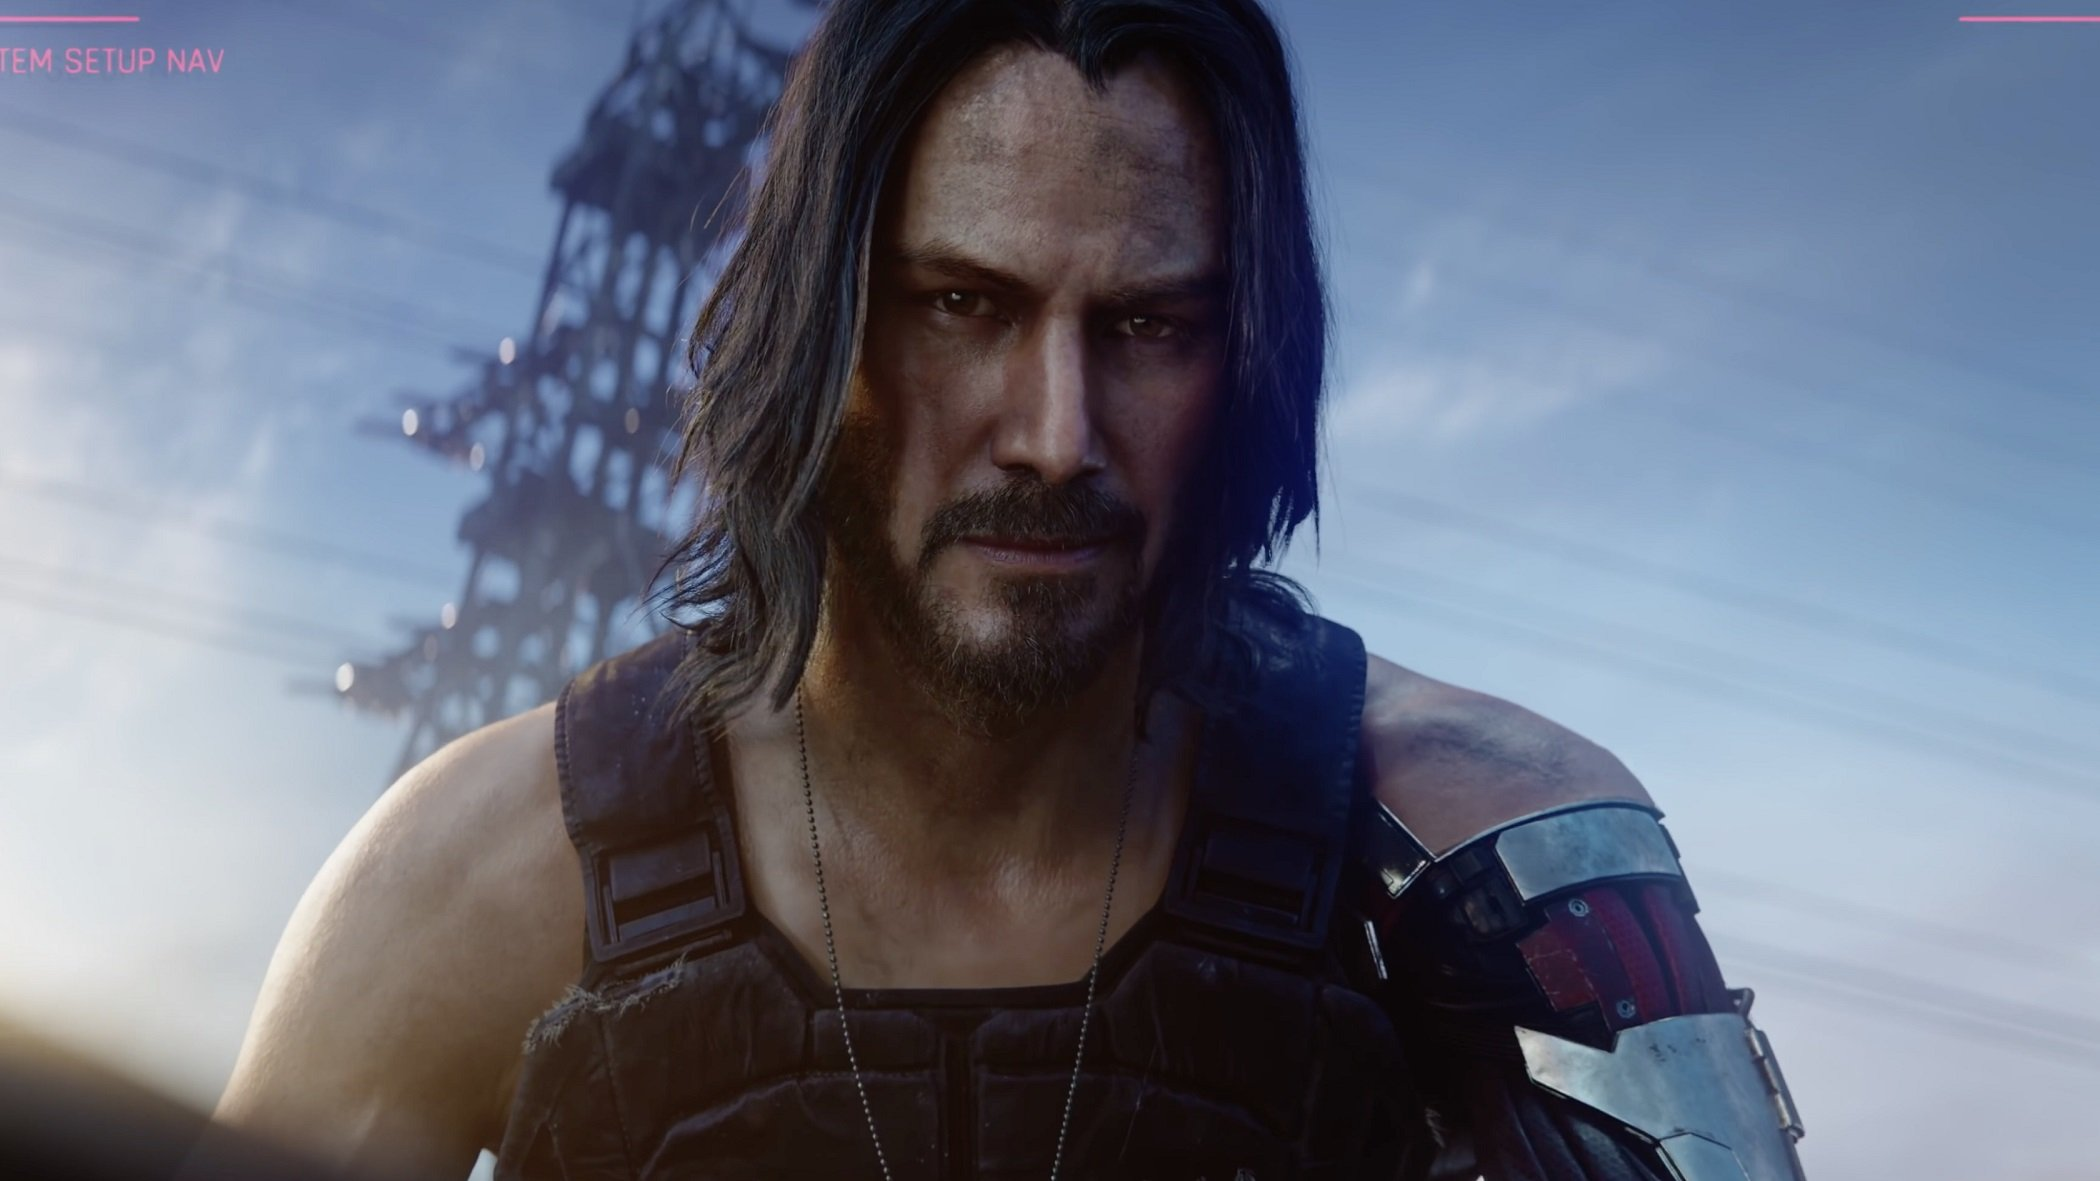 Cyberpunk 2077 will be available on Google Stadia in 2020.